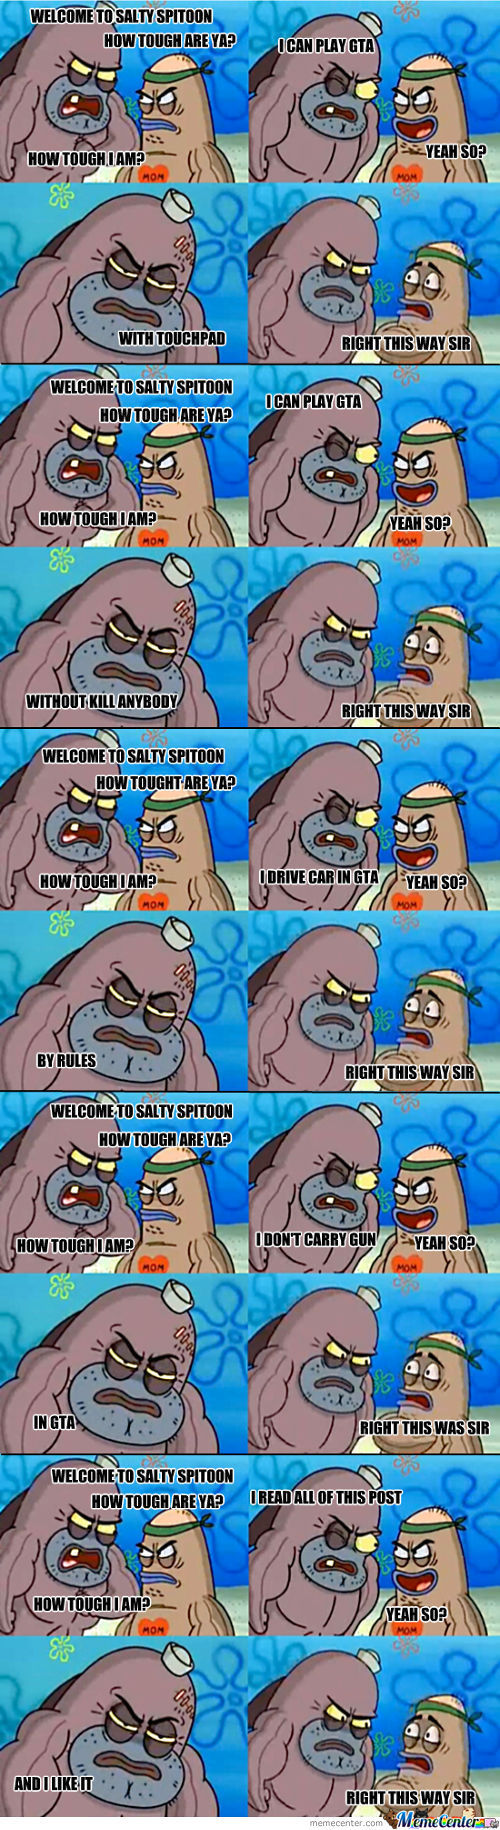 How Tough In Gta